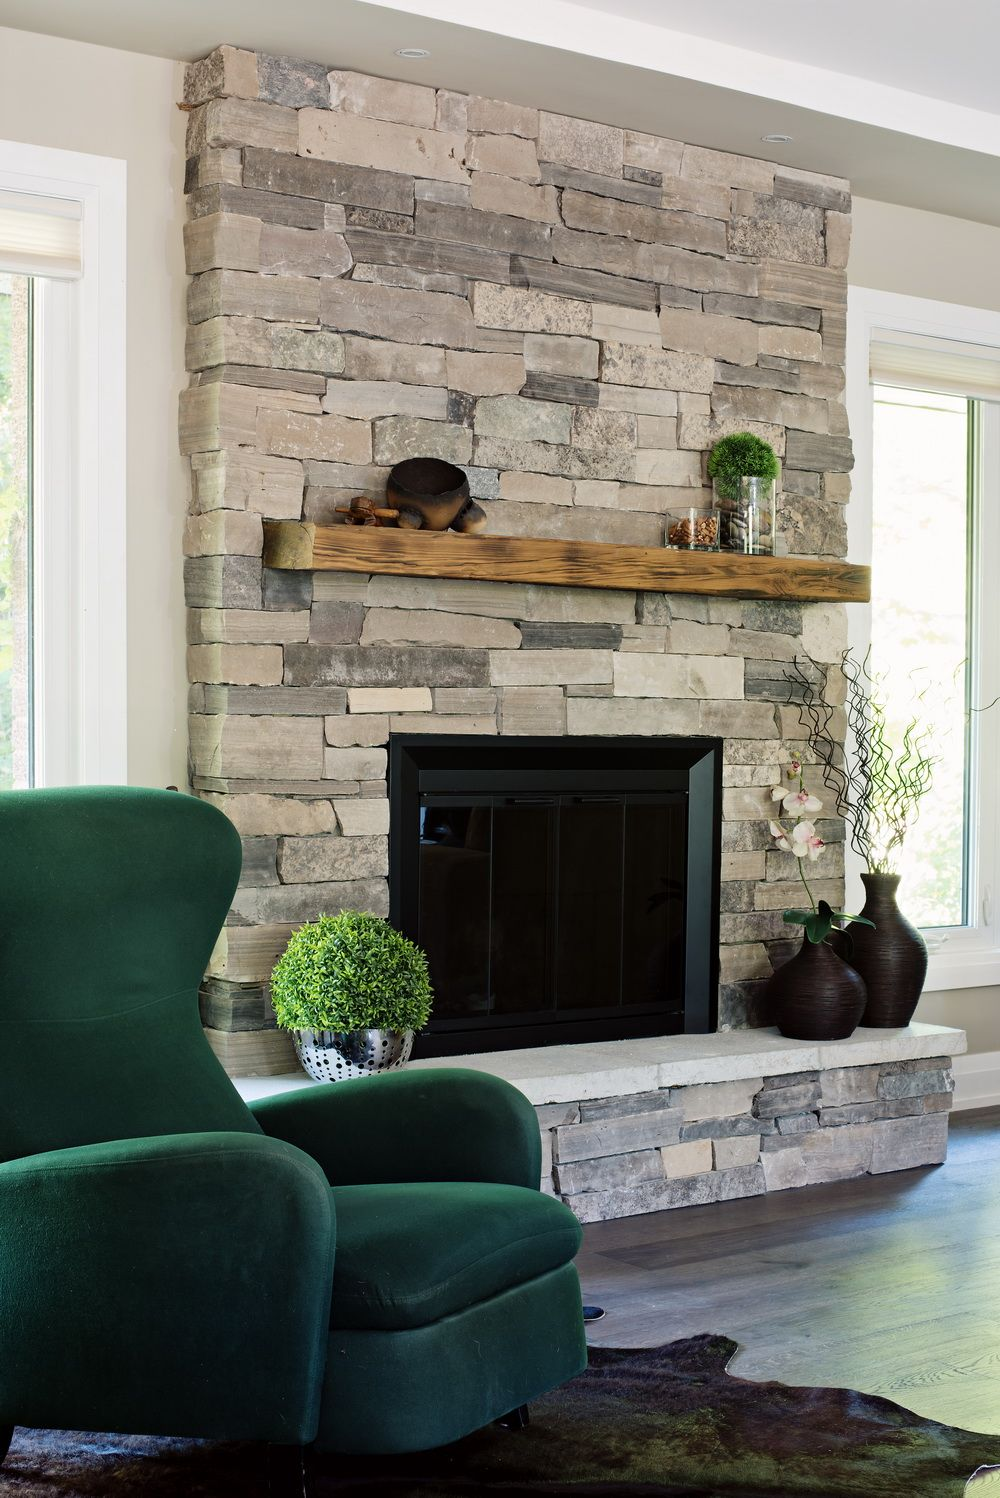 Stone Selex St Clair Ledge Stone Natural Stone Veneer In 2019 Brick Fireplace Fireplace